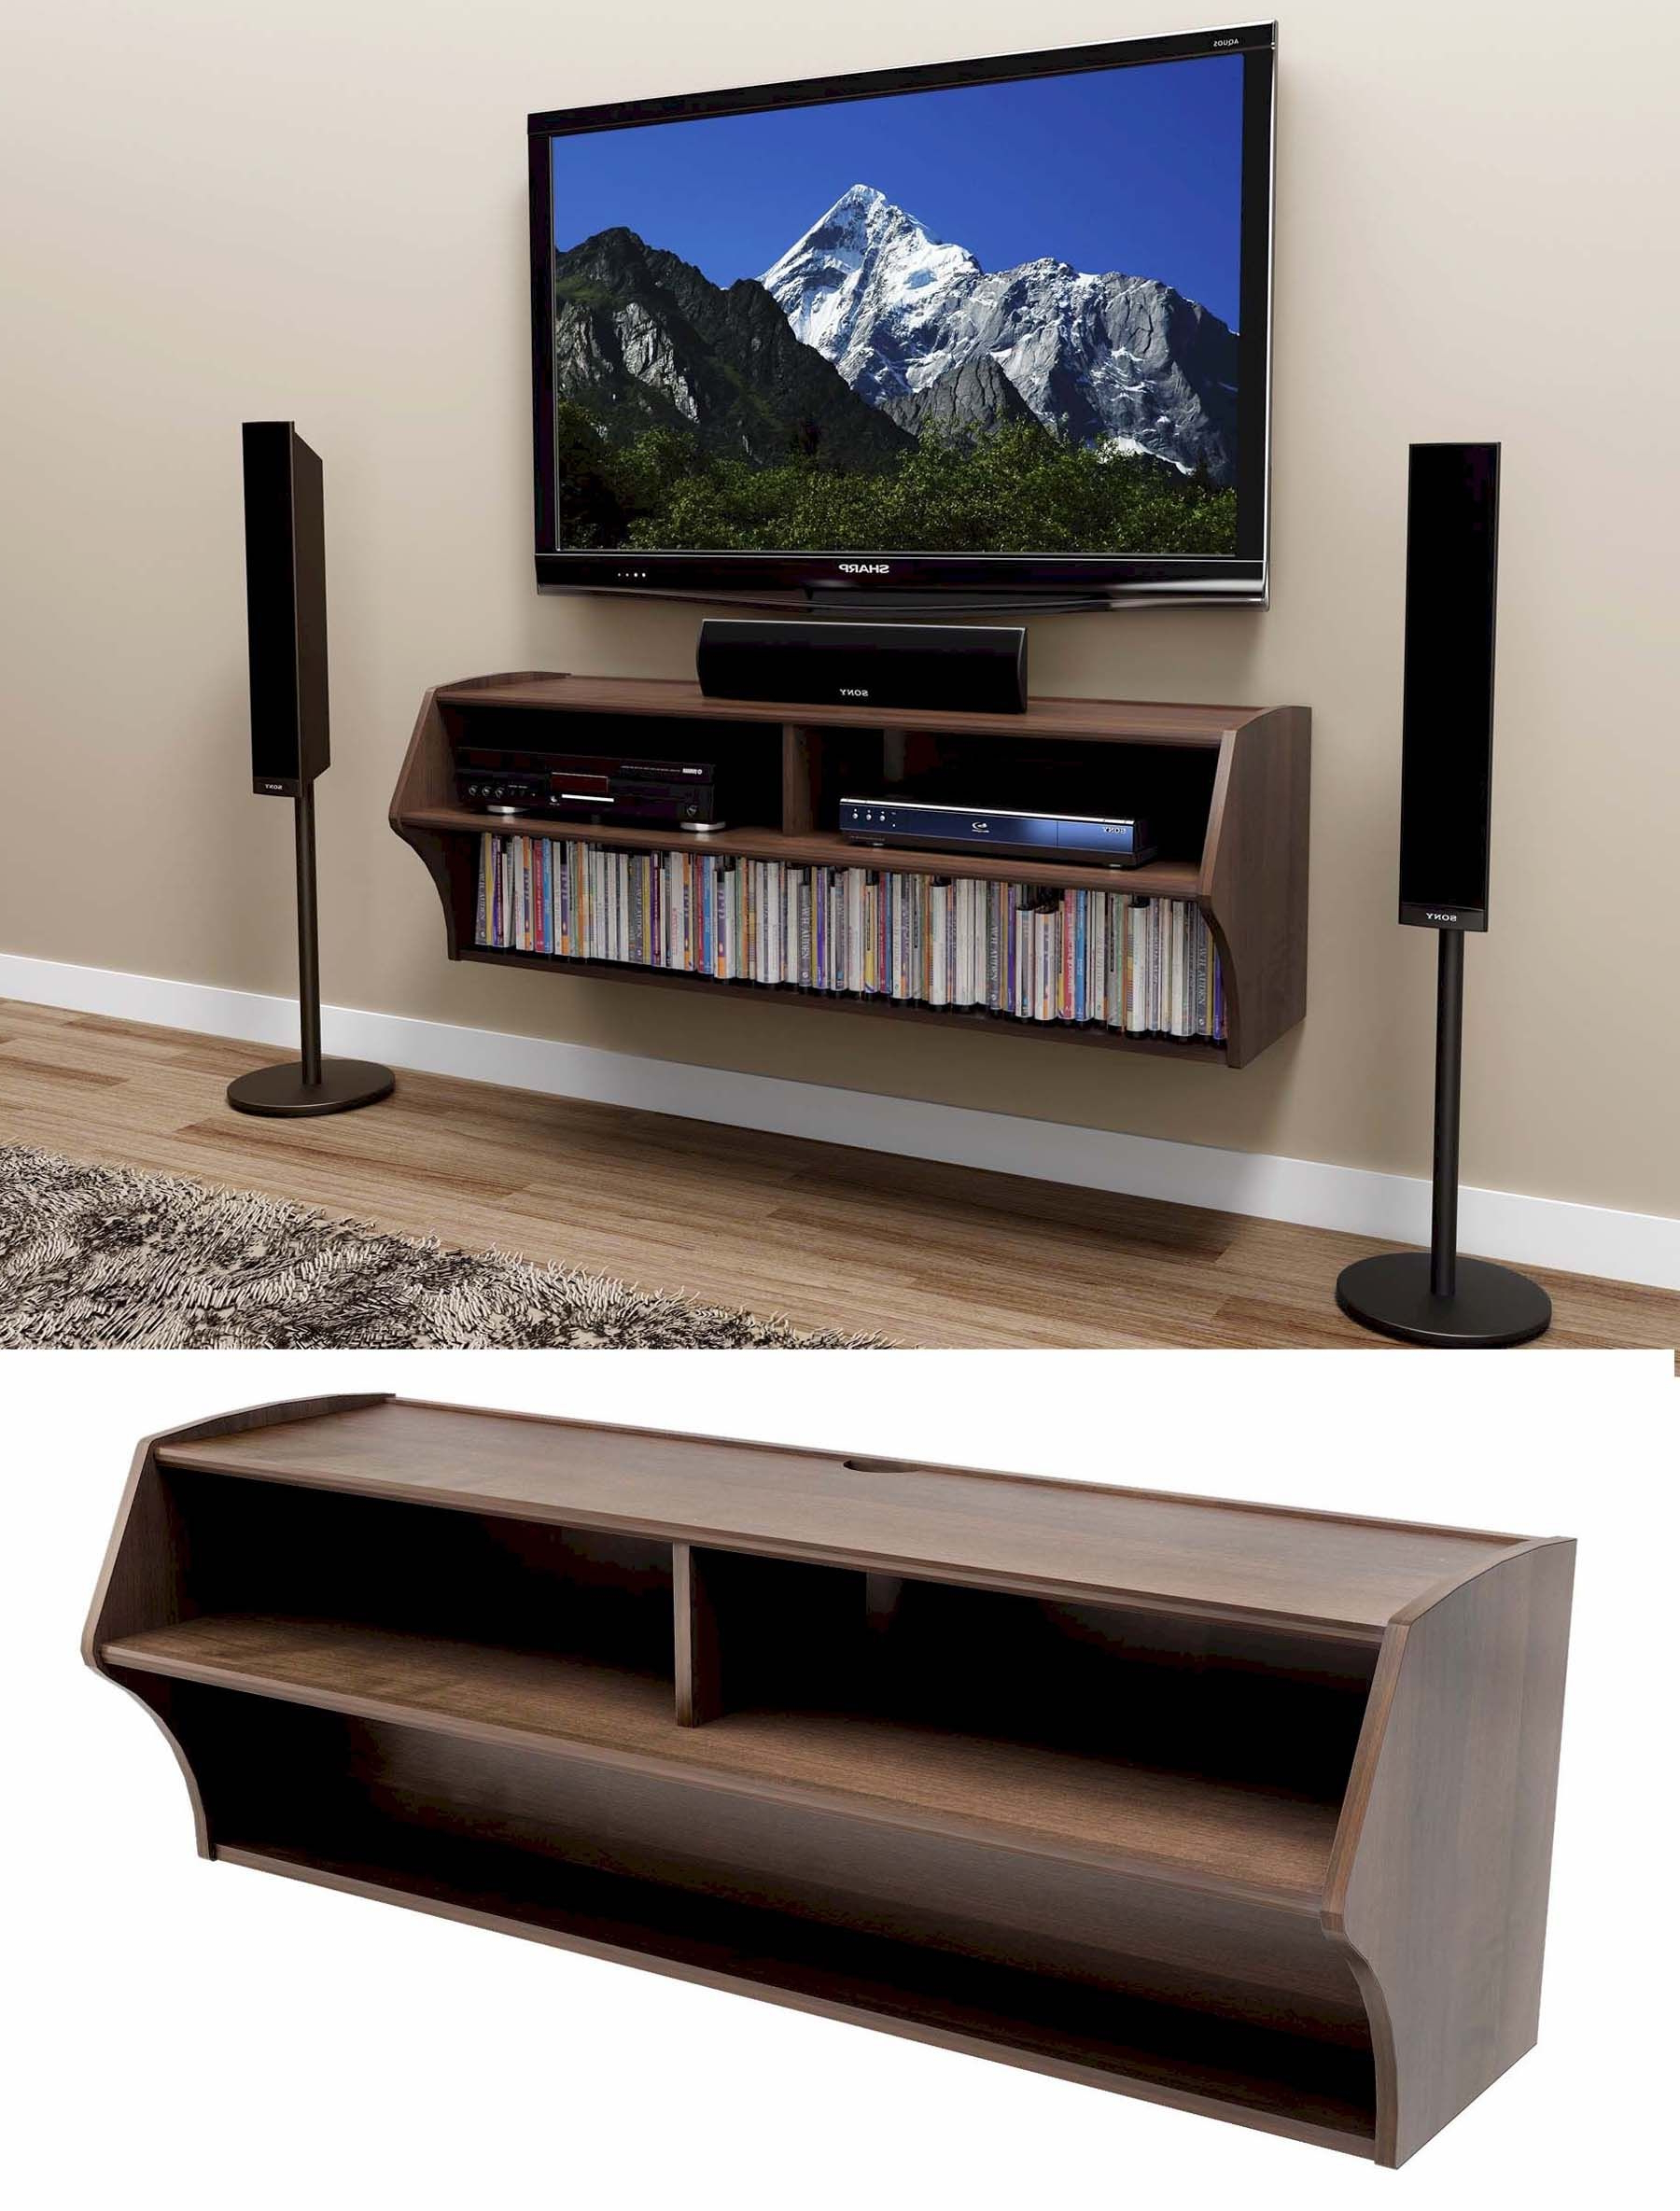 Wall Mounted Tv Stand With Shelf (View 15 of 20)